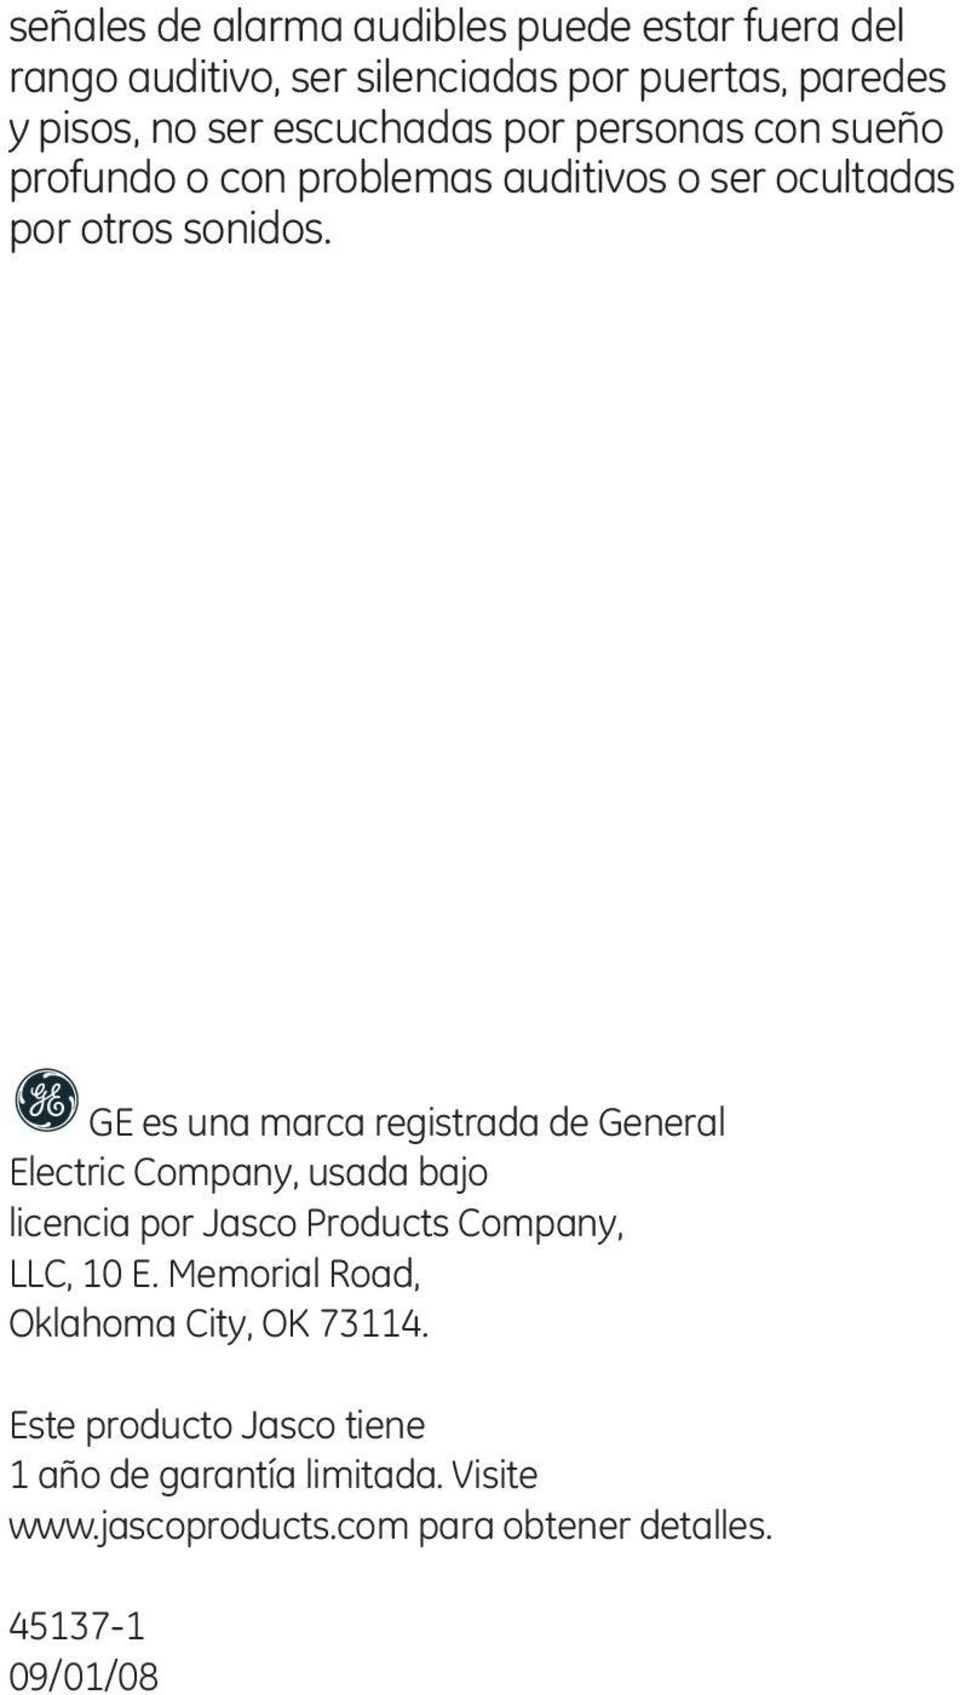 GE es una marca registrada de General Electric Company, usada bajo licencia por Jasco Products Company, LLC, 10 E.